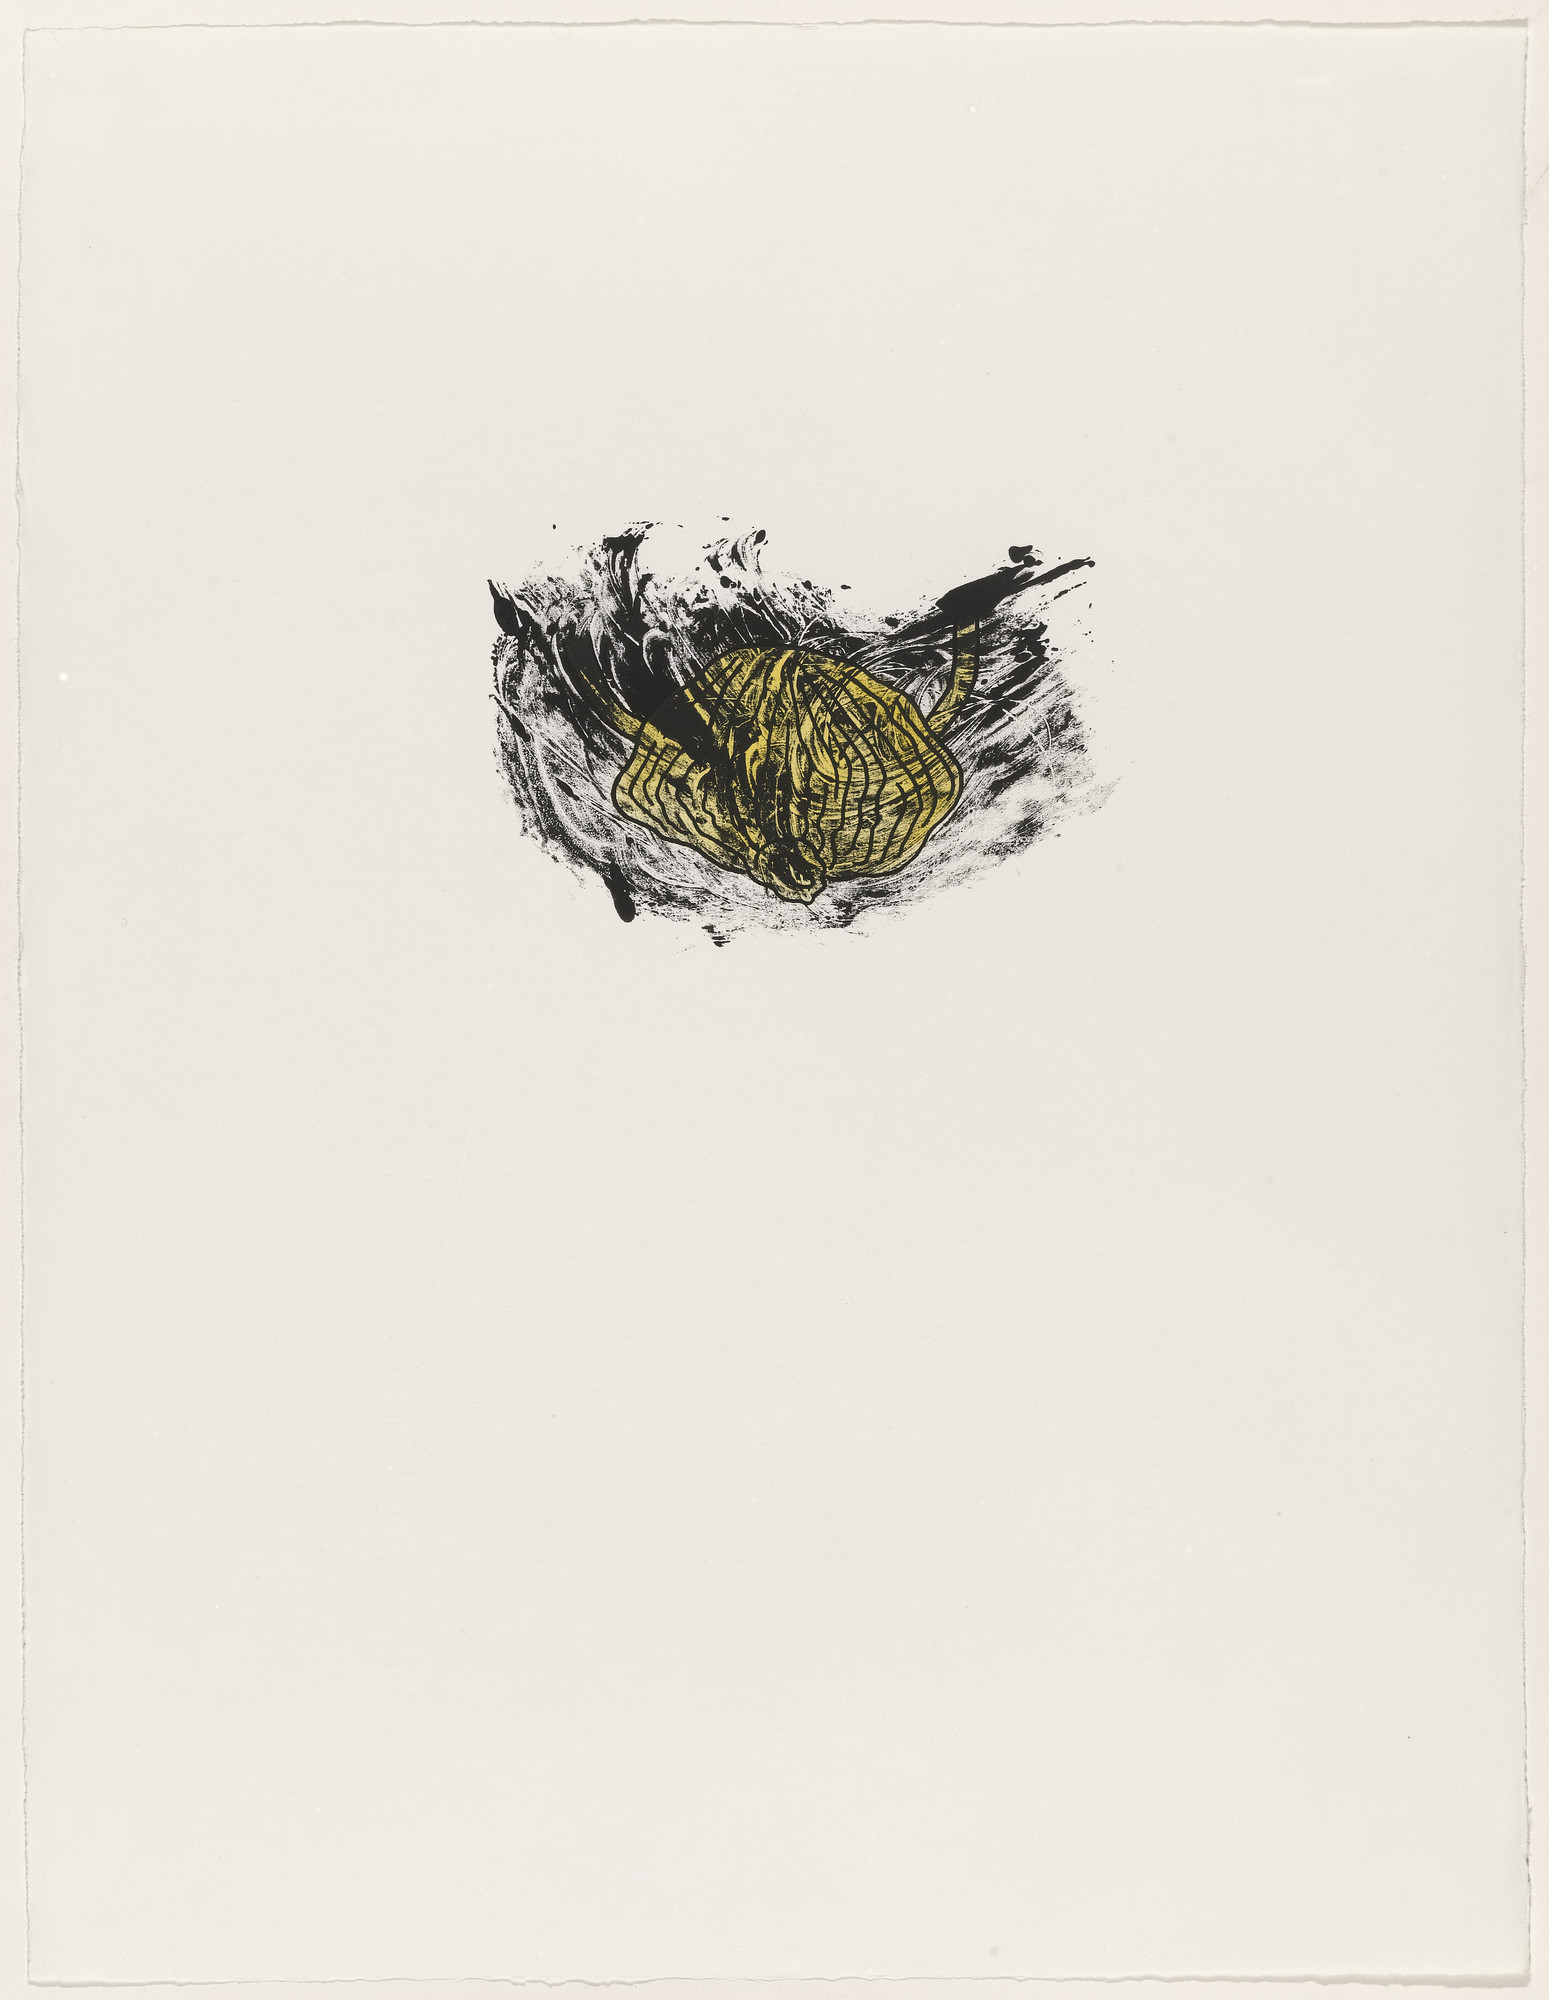 Kiki Smith. Bladder from Possession Is Nine-Tenths of the Law. 1985